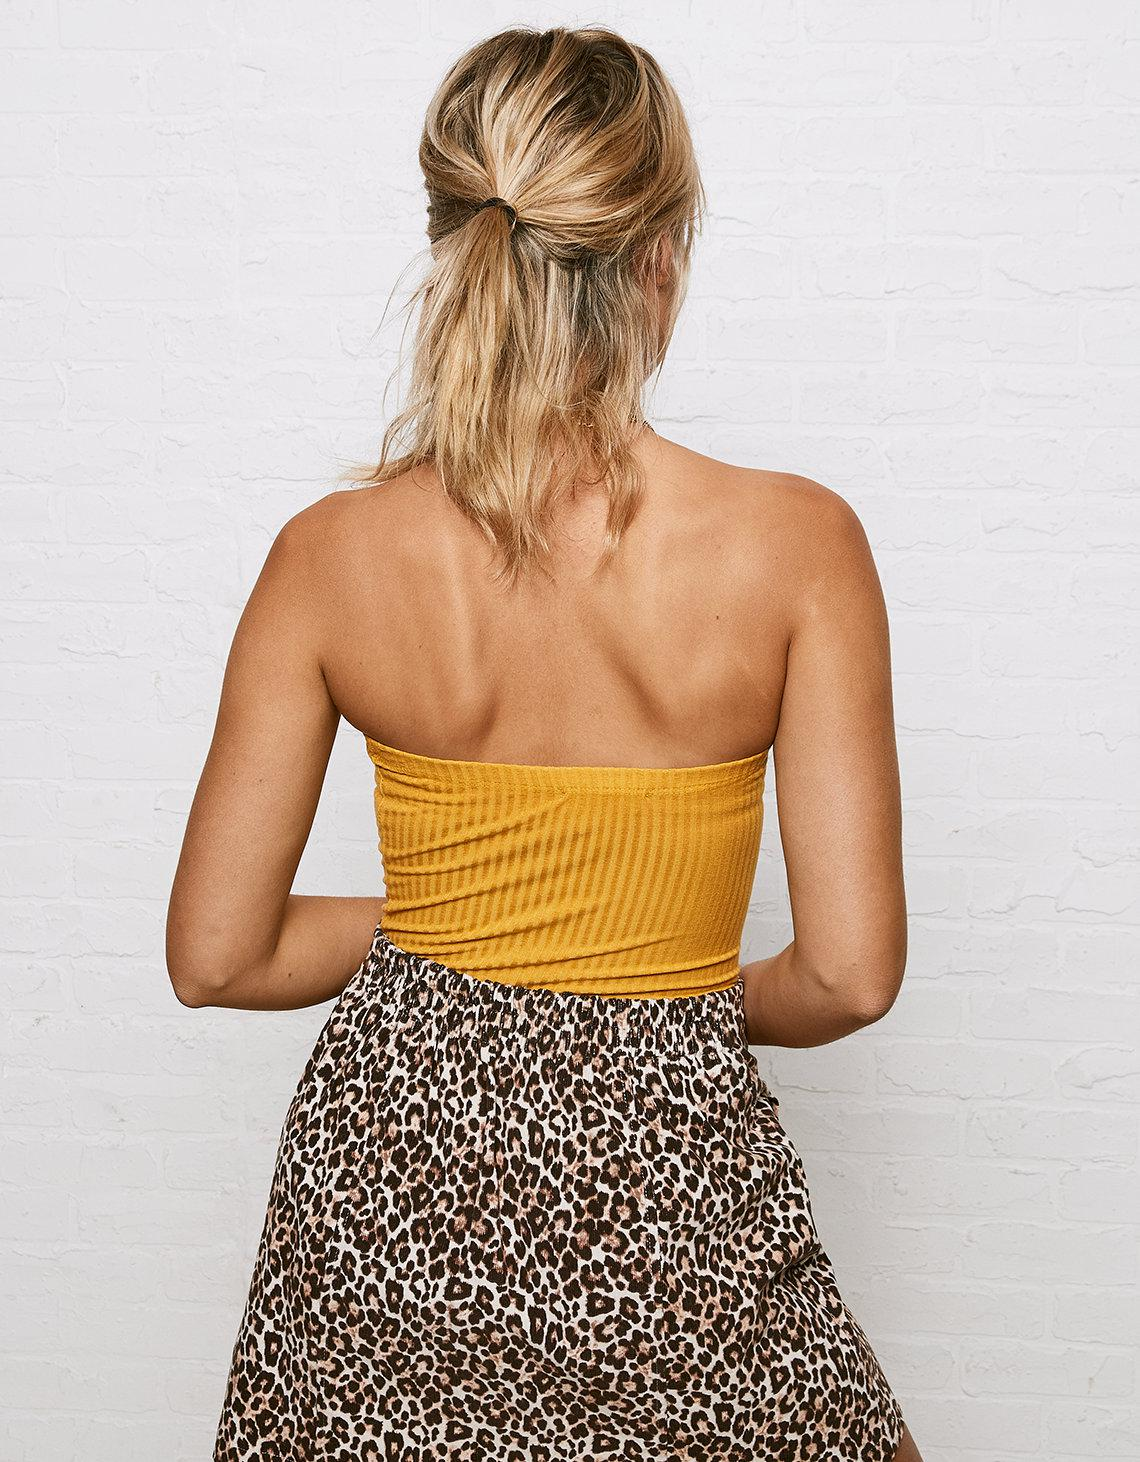 Lyst - American Eagle Don t Ask Why Tube Top Bodysuit in Yellow 16042e224